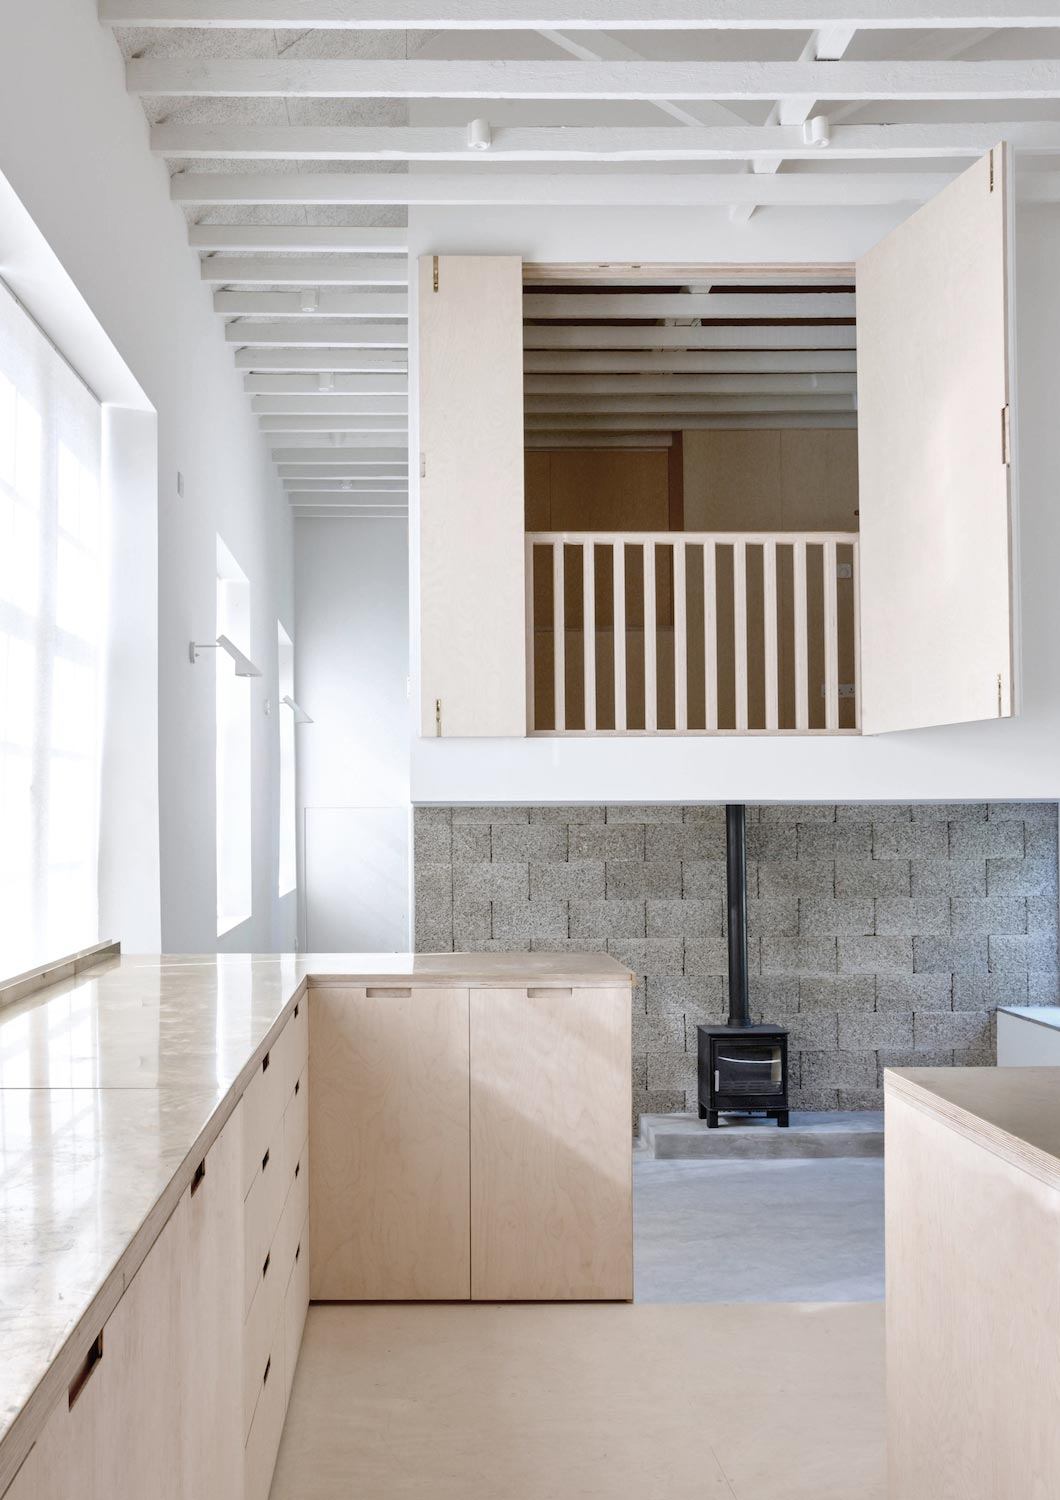 Merrydown Townhouse in Dorset, United Kingdom by McLaren Excell